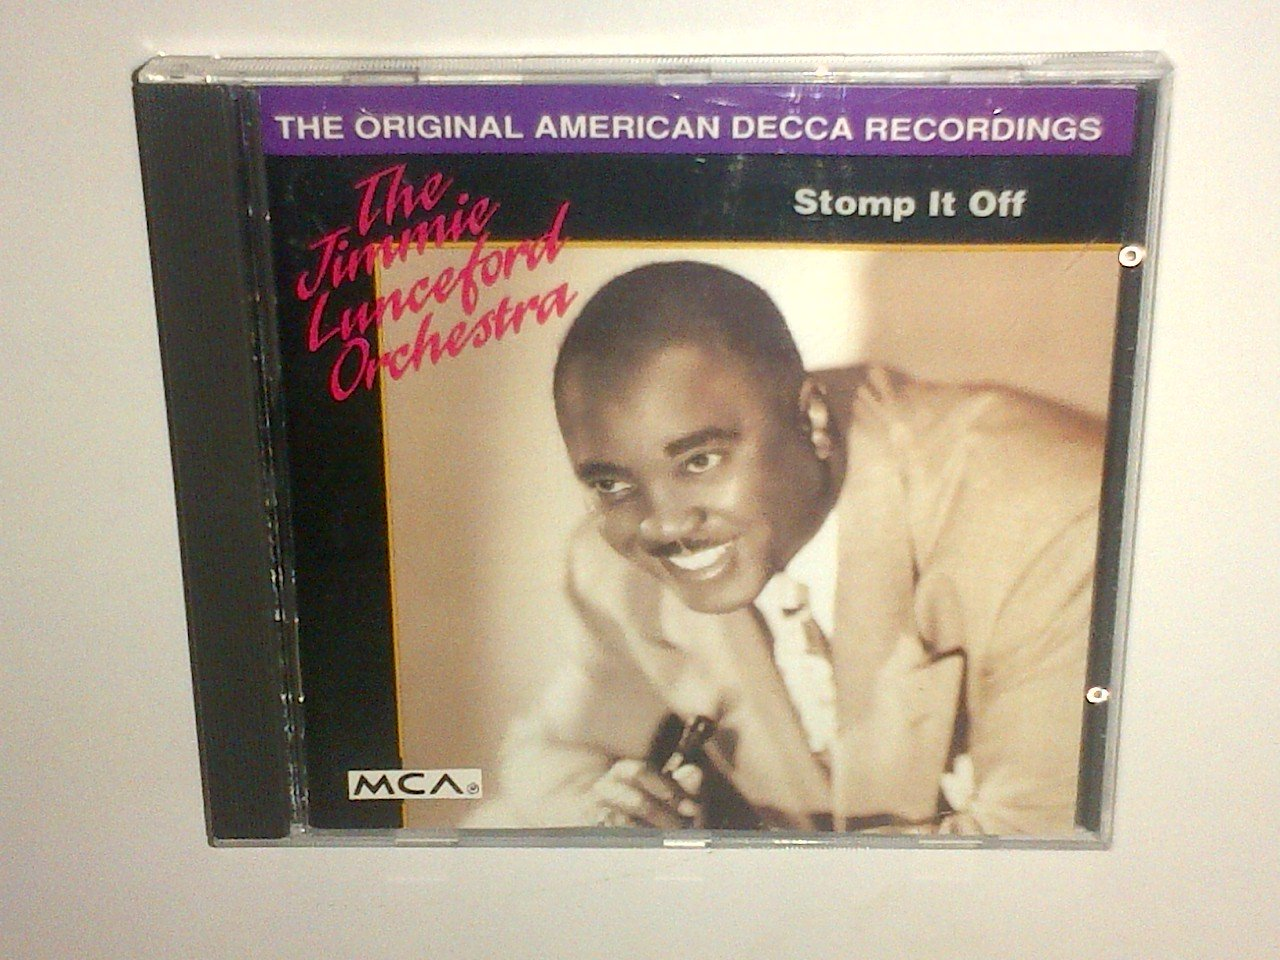 The Jimmie Lunceford Orchestra - Stomp It Off. CD